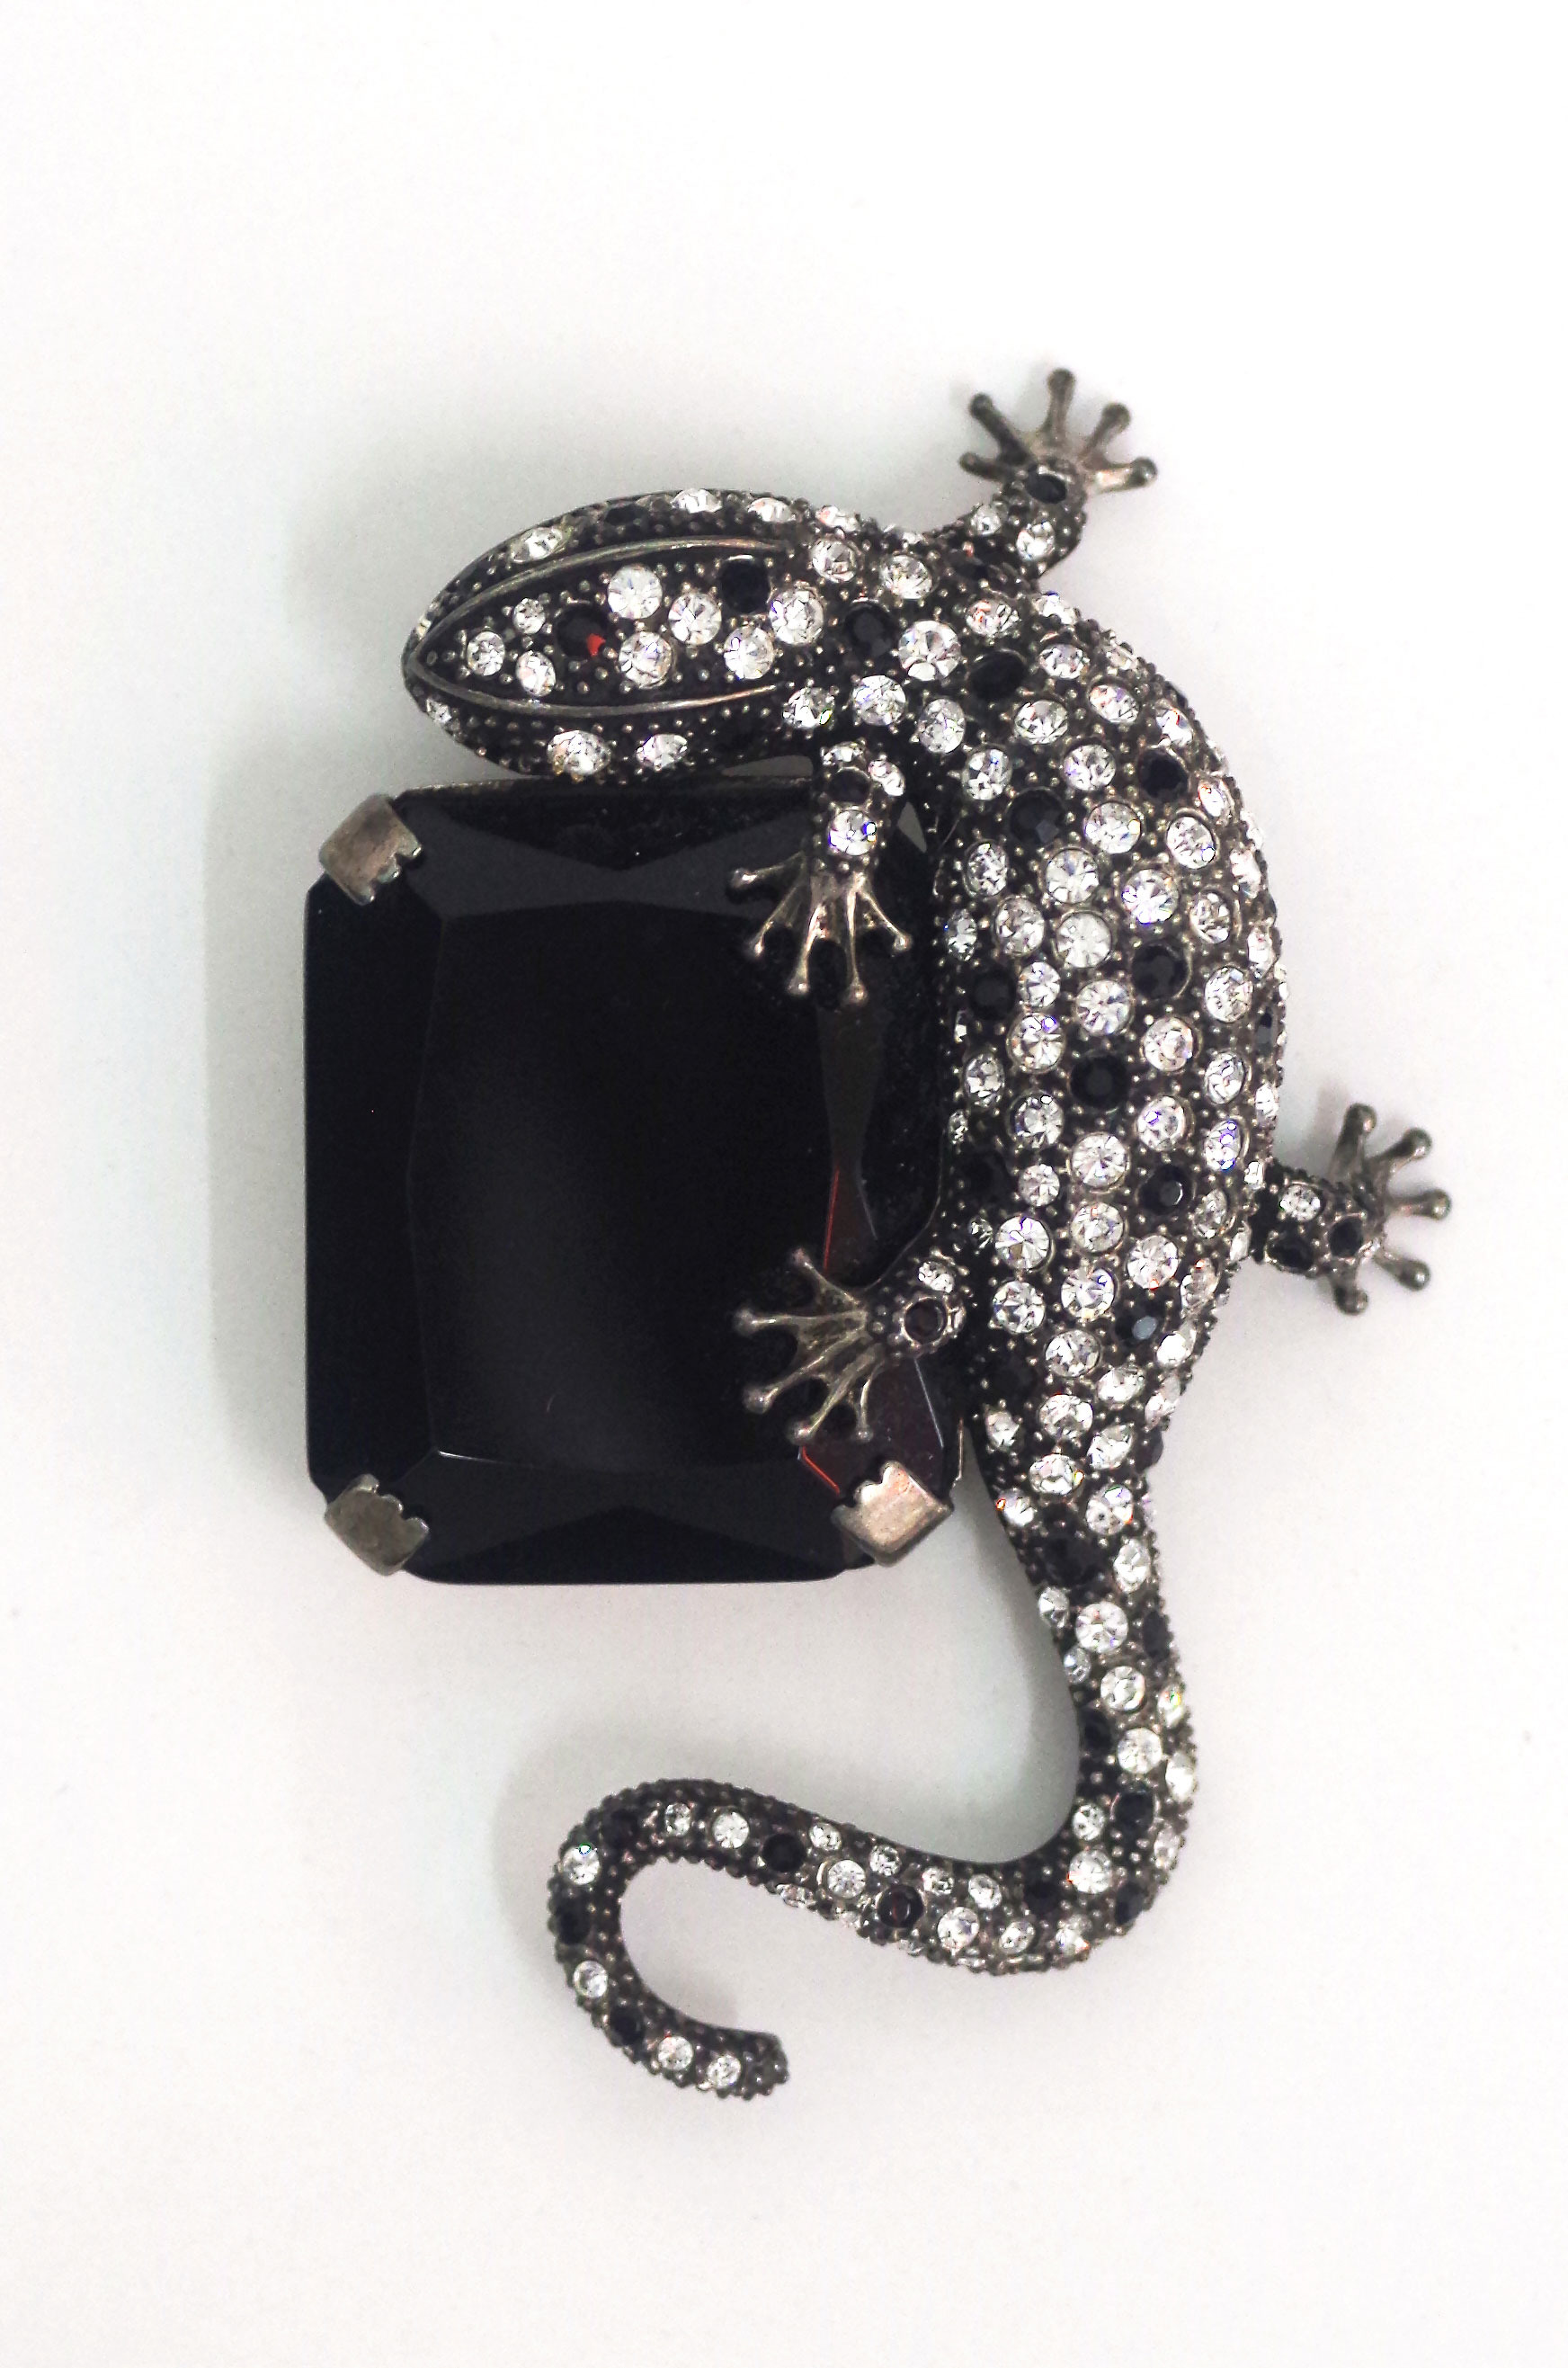 Brooch from Iris Apfel's trunk show.